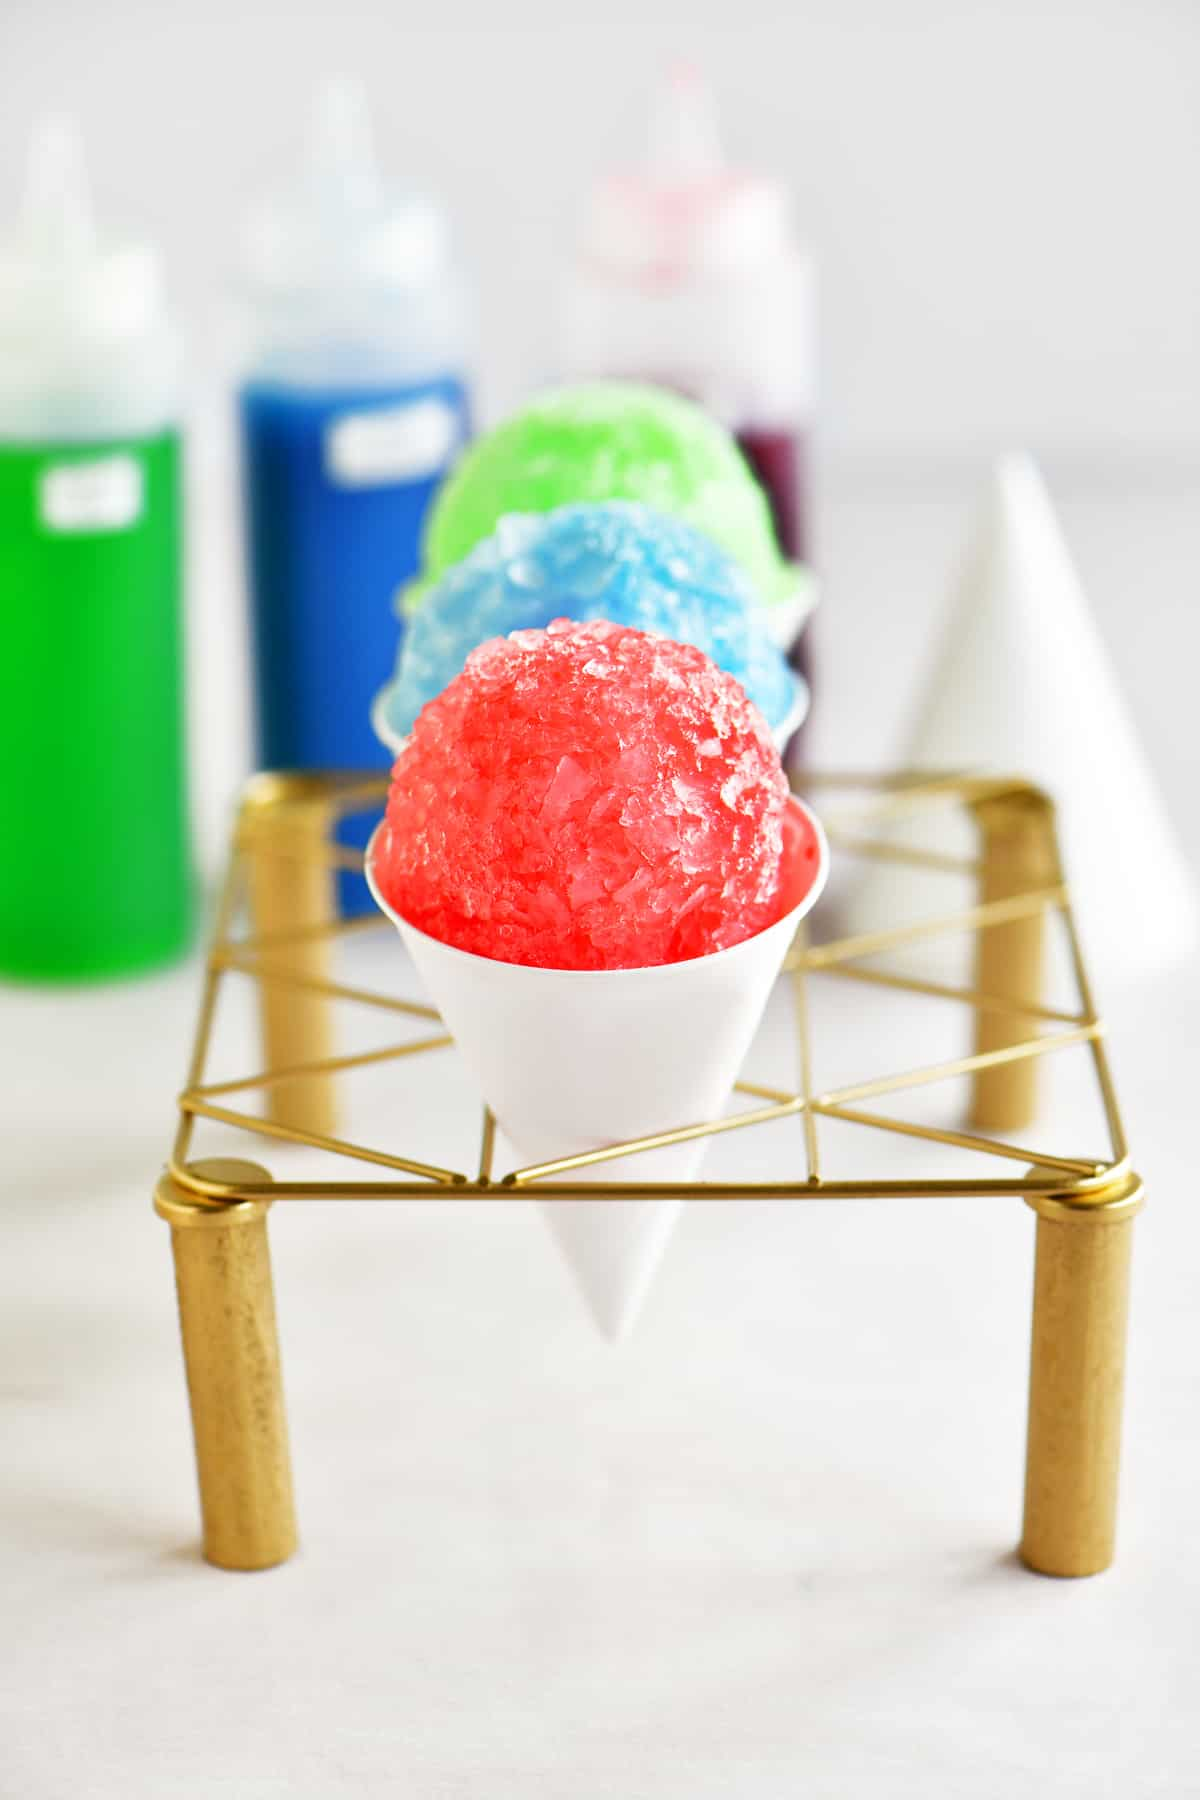 snow cones with snow cone syrup bottles in the background